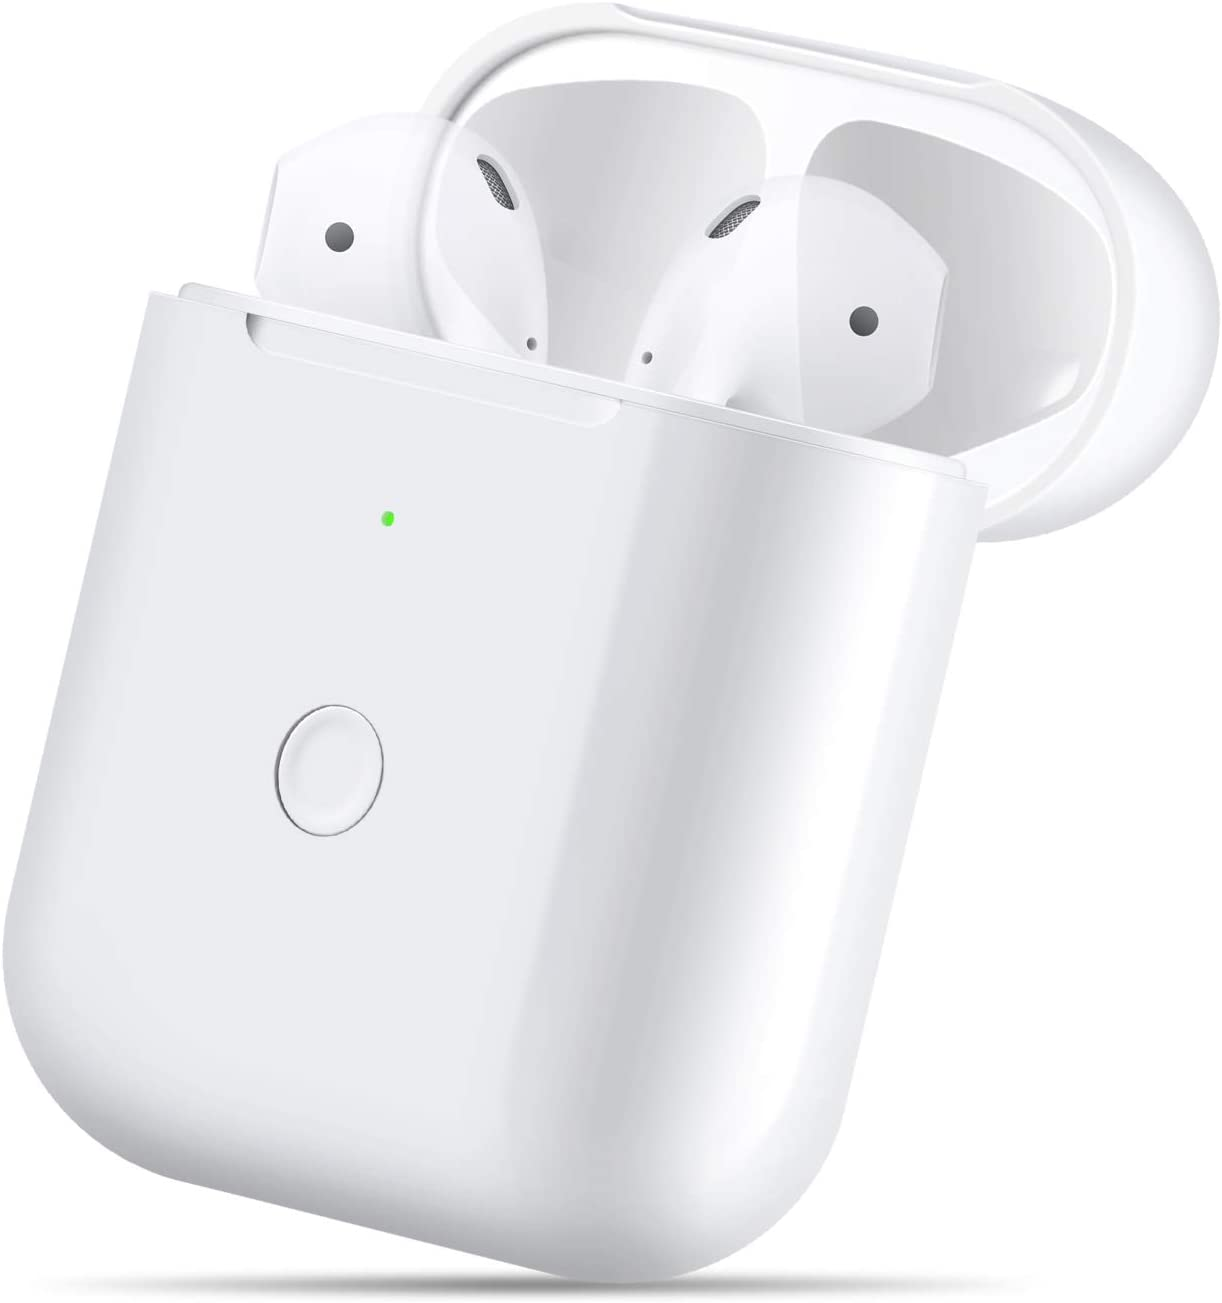 Wireless Charging Case Compatible with AirPods 1 2,Air pods Charger Case Replacement with Bluetooth Pairing Sync Button,no Aipods,White